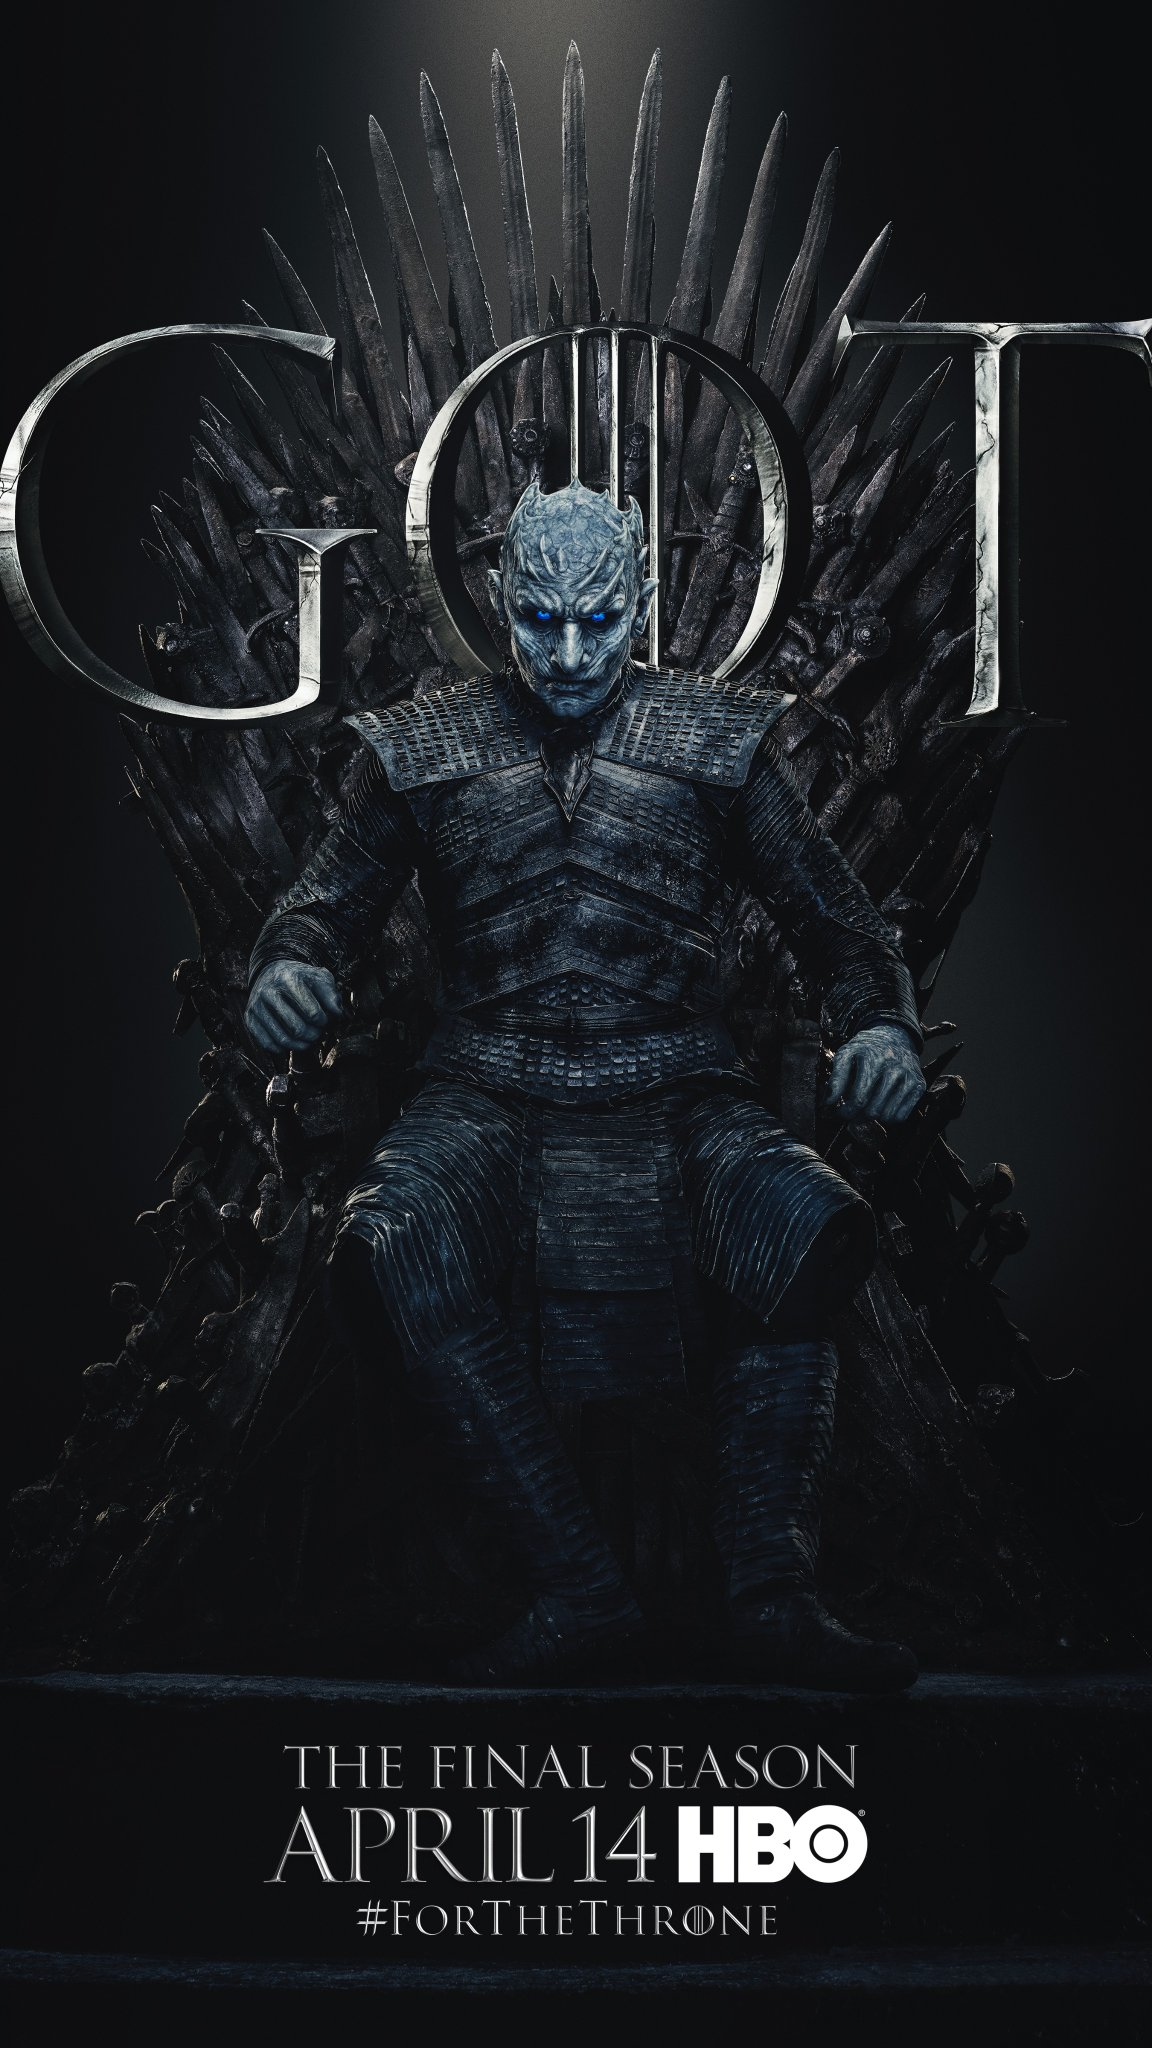 Iron Throne Poster - Night King